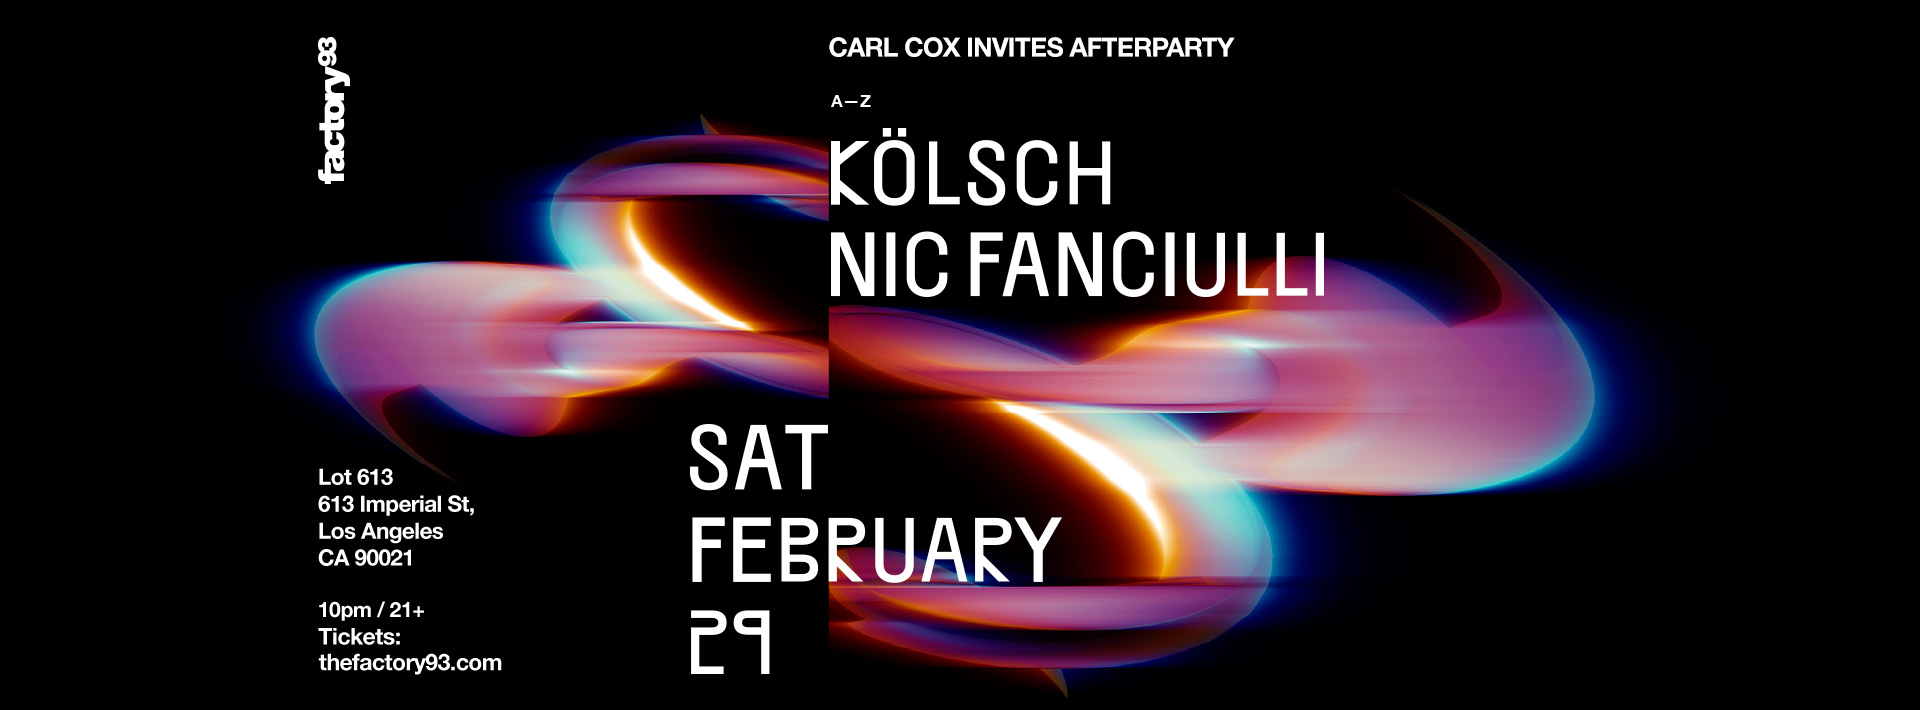 Carl Cox Invites Afterparty with Kölsch & Nic Fanciulli